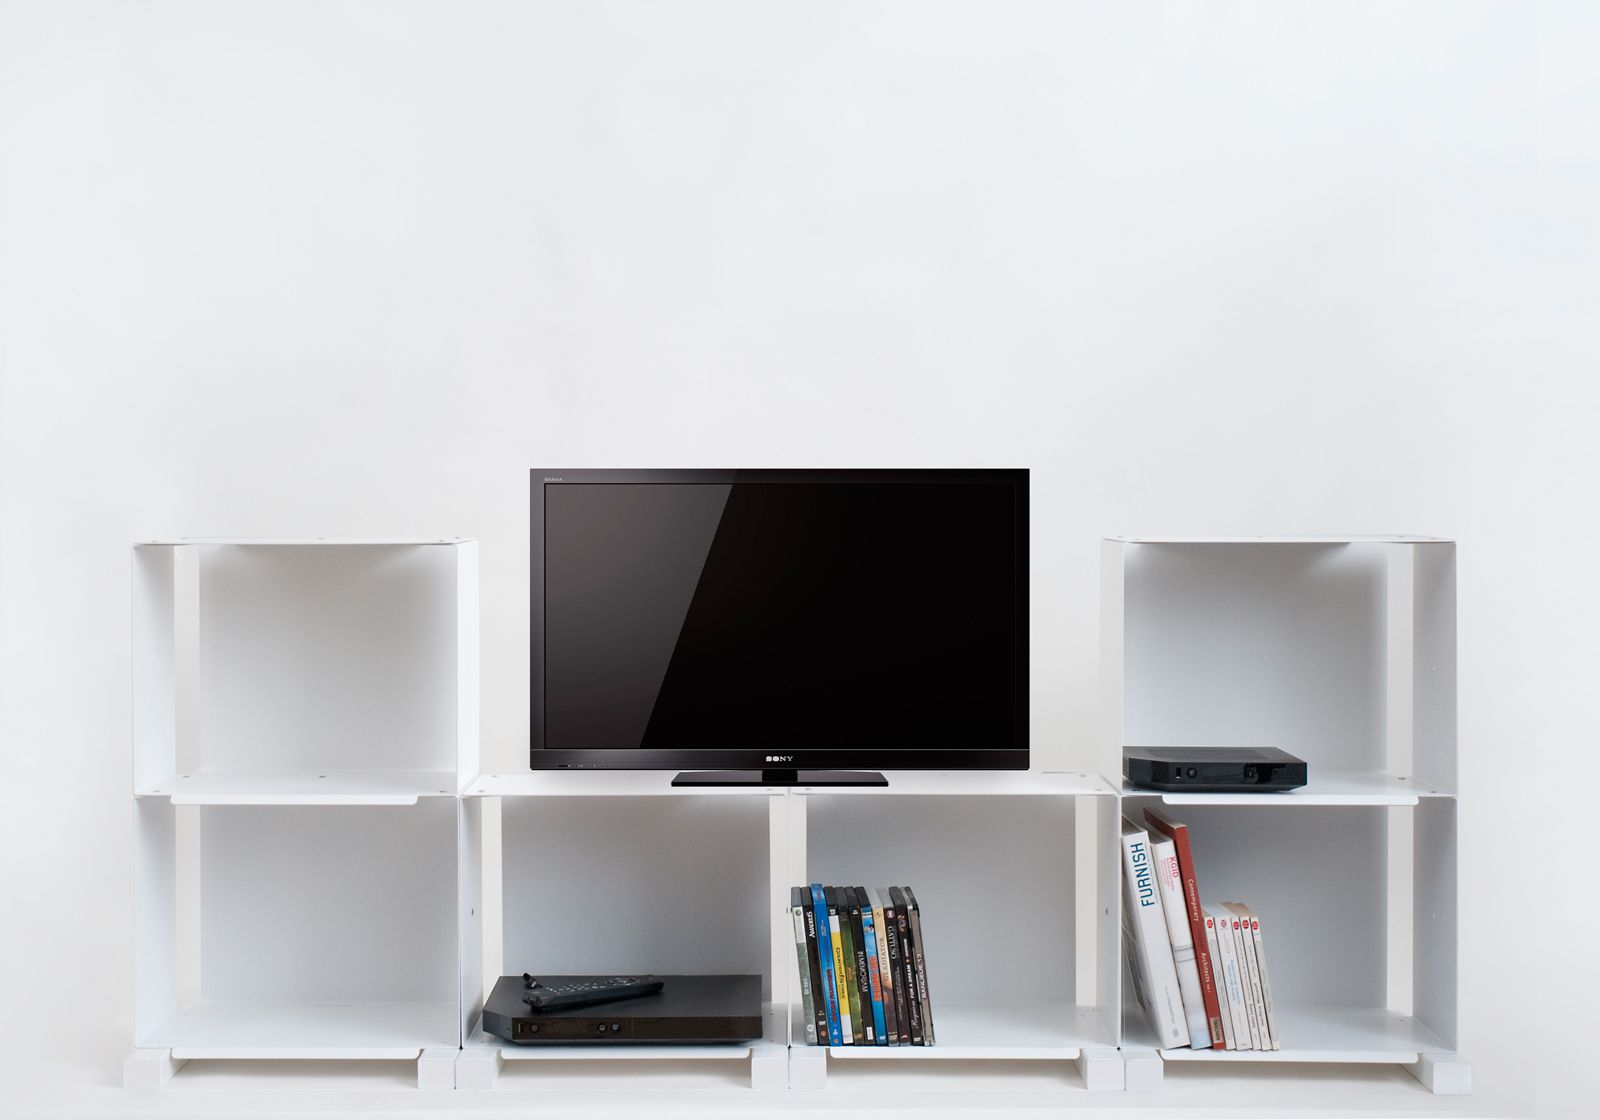 Meuble Tv Nolita Frdesignhub Co # Meuble Tv Nolita